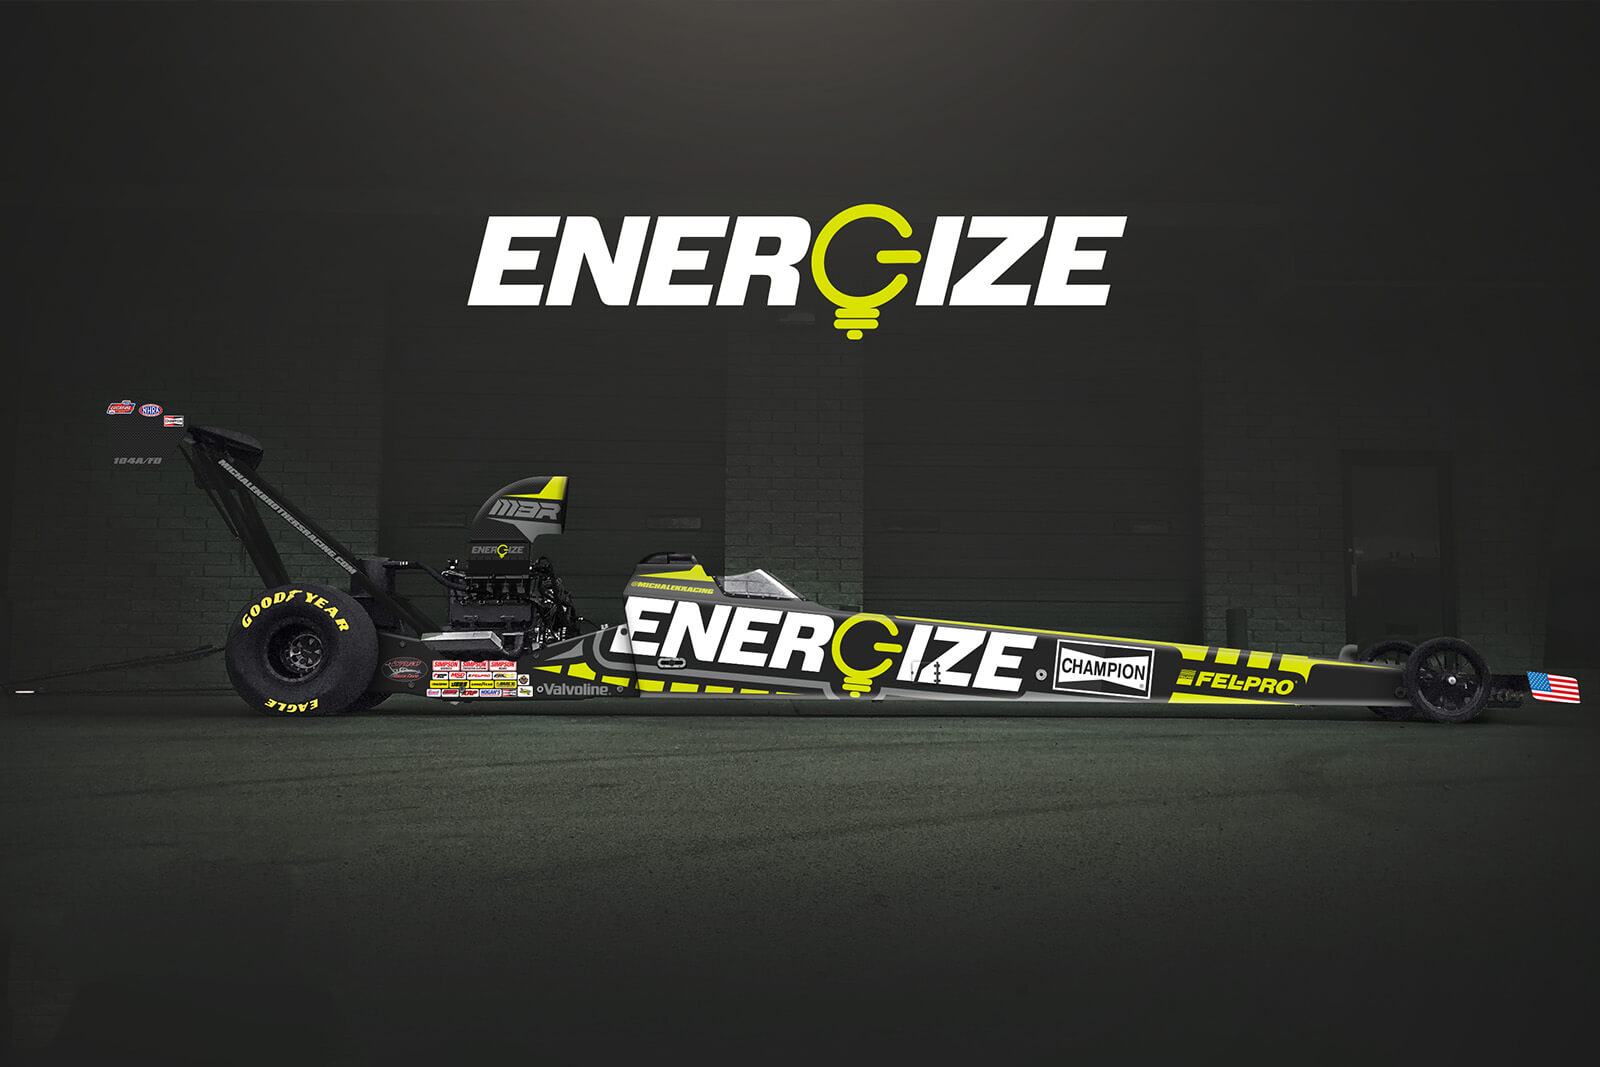 ENERGIZE, LLC partners with Michalek Brothers Racing